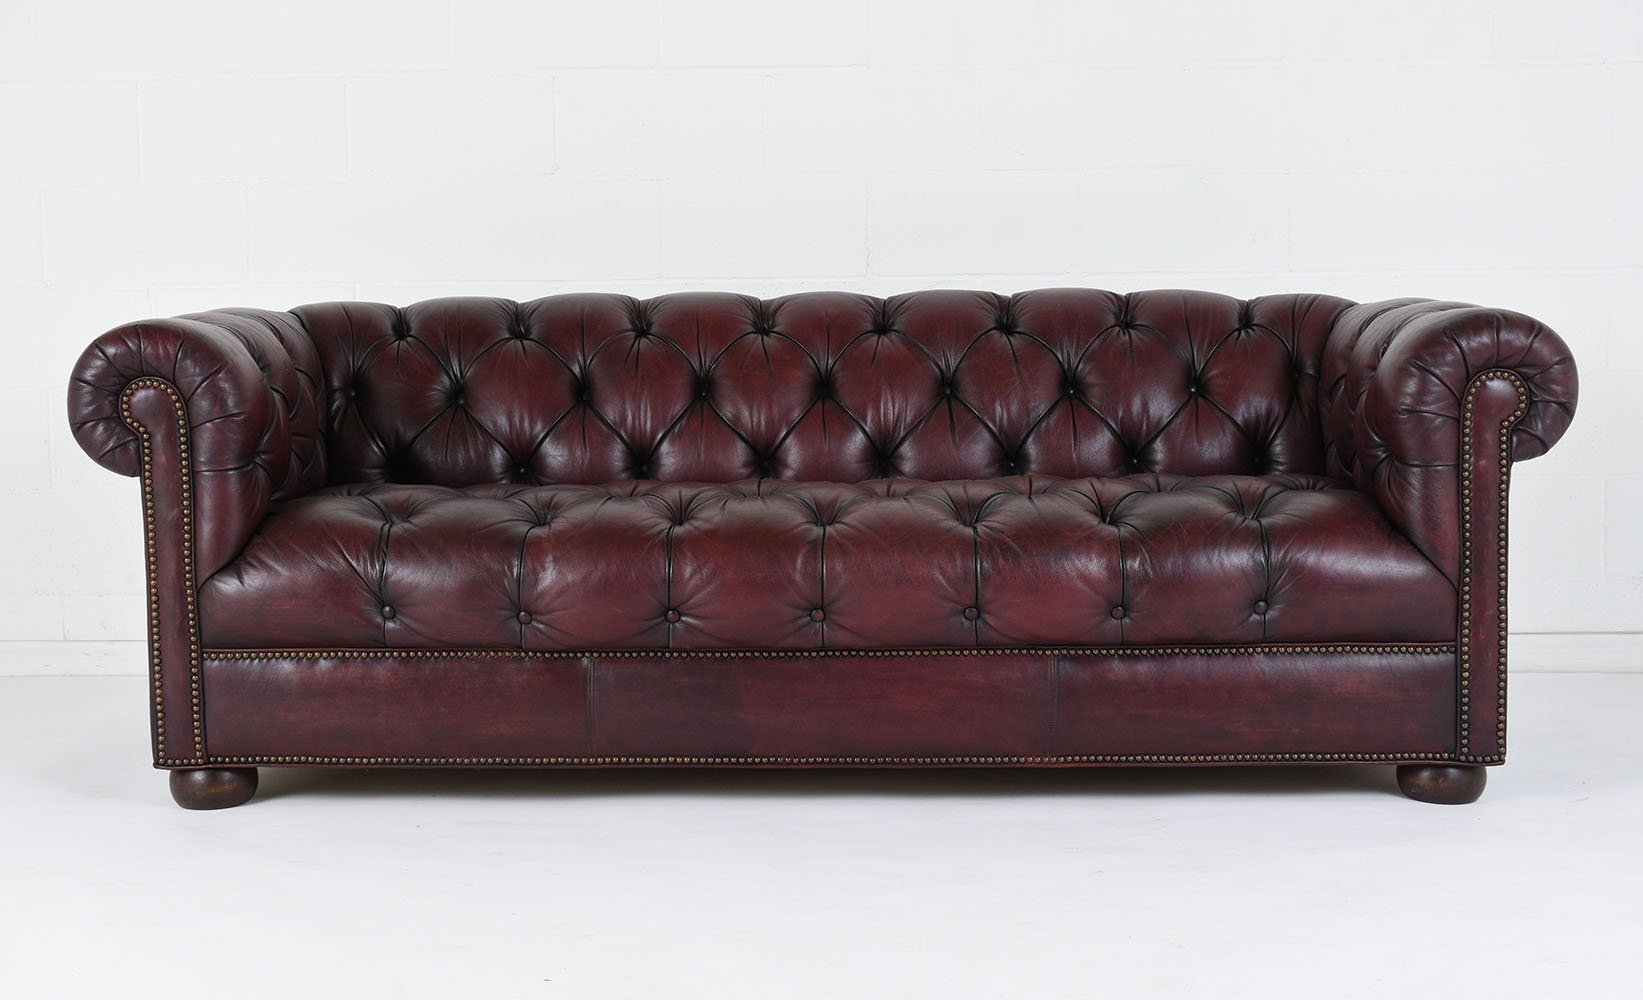 Vintage Tufted Leather Sofa 1970s